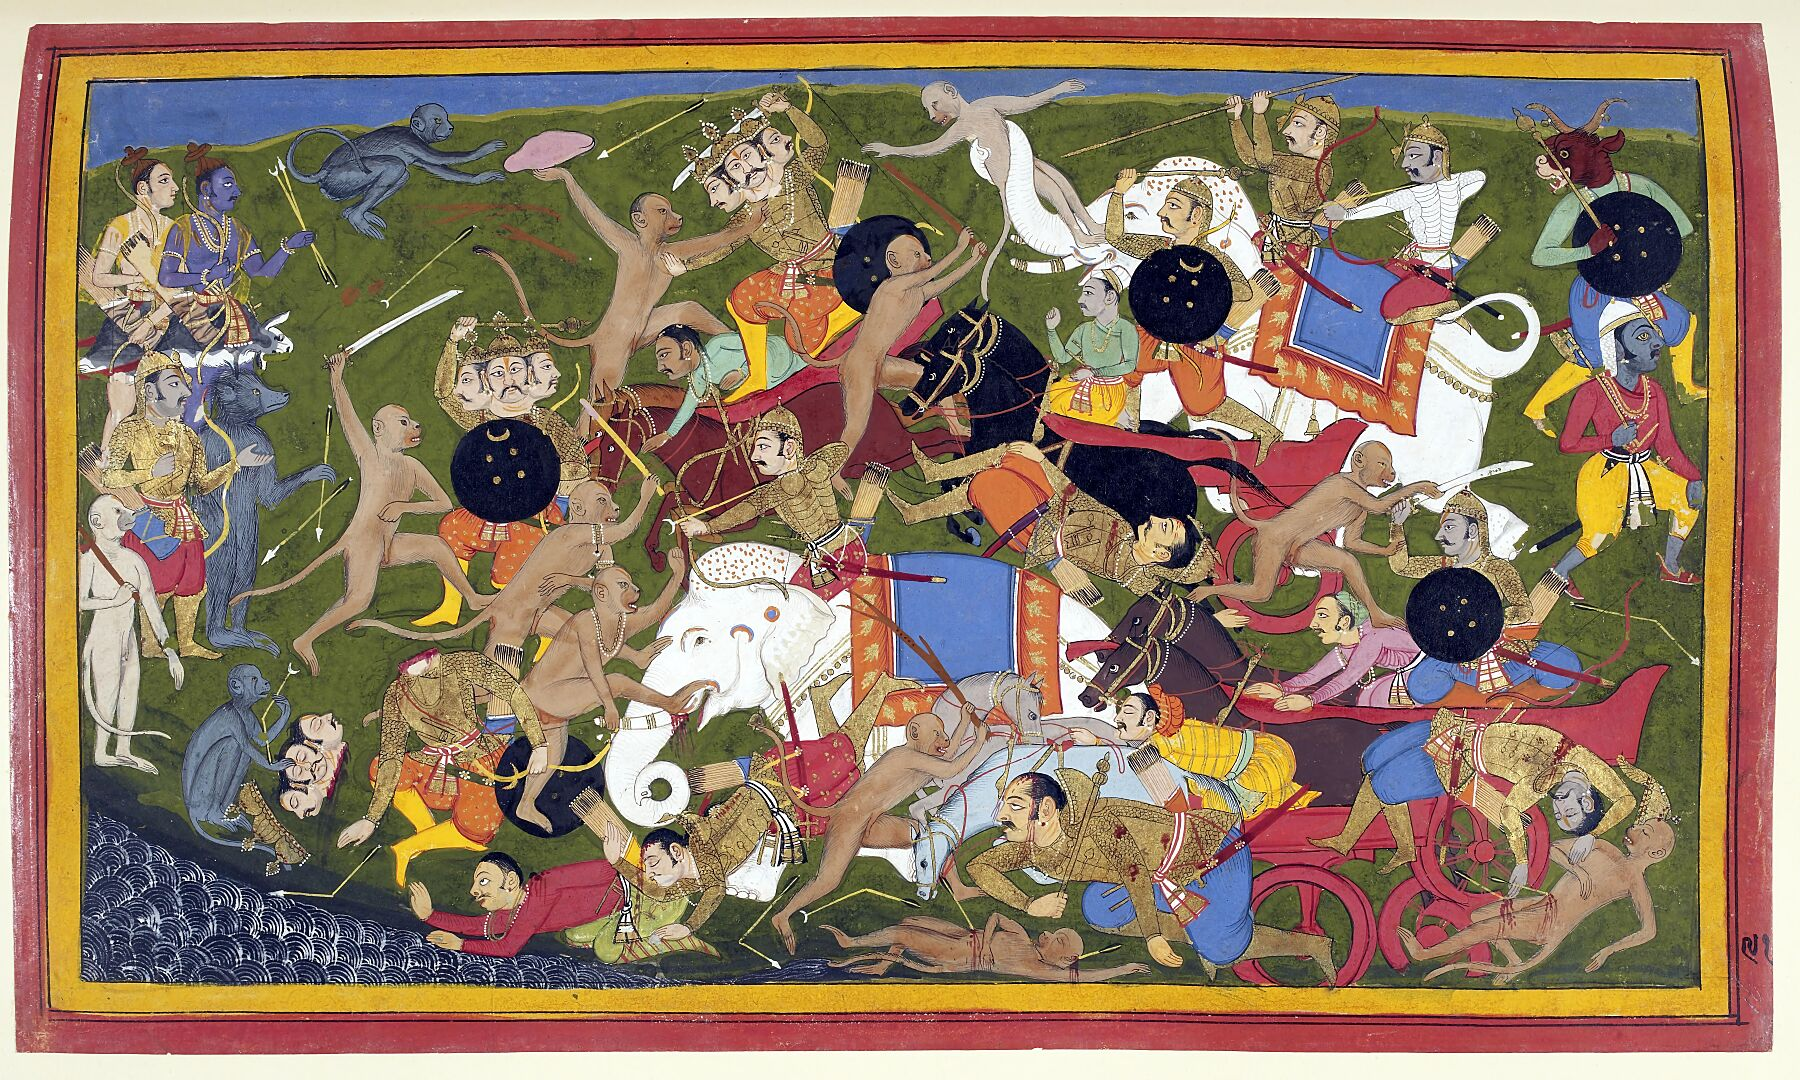 Battle at Lanka, between the armies of Rama and the King of Lanka, 1649-1653.